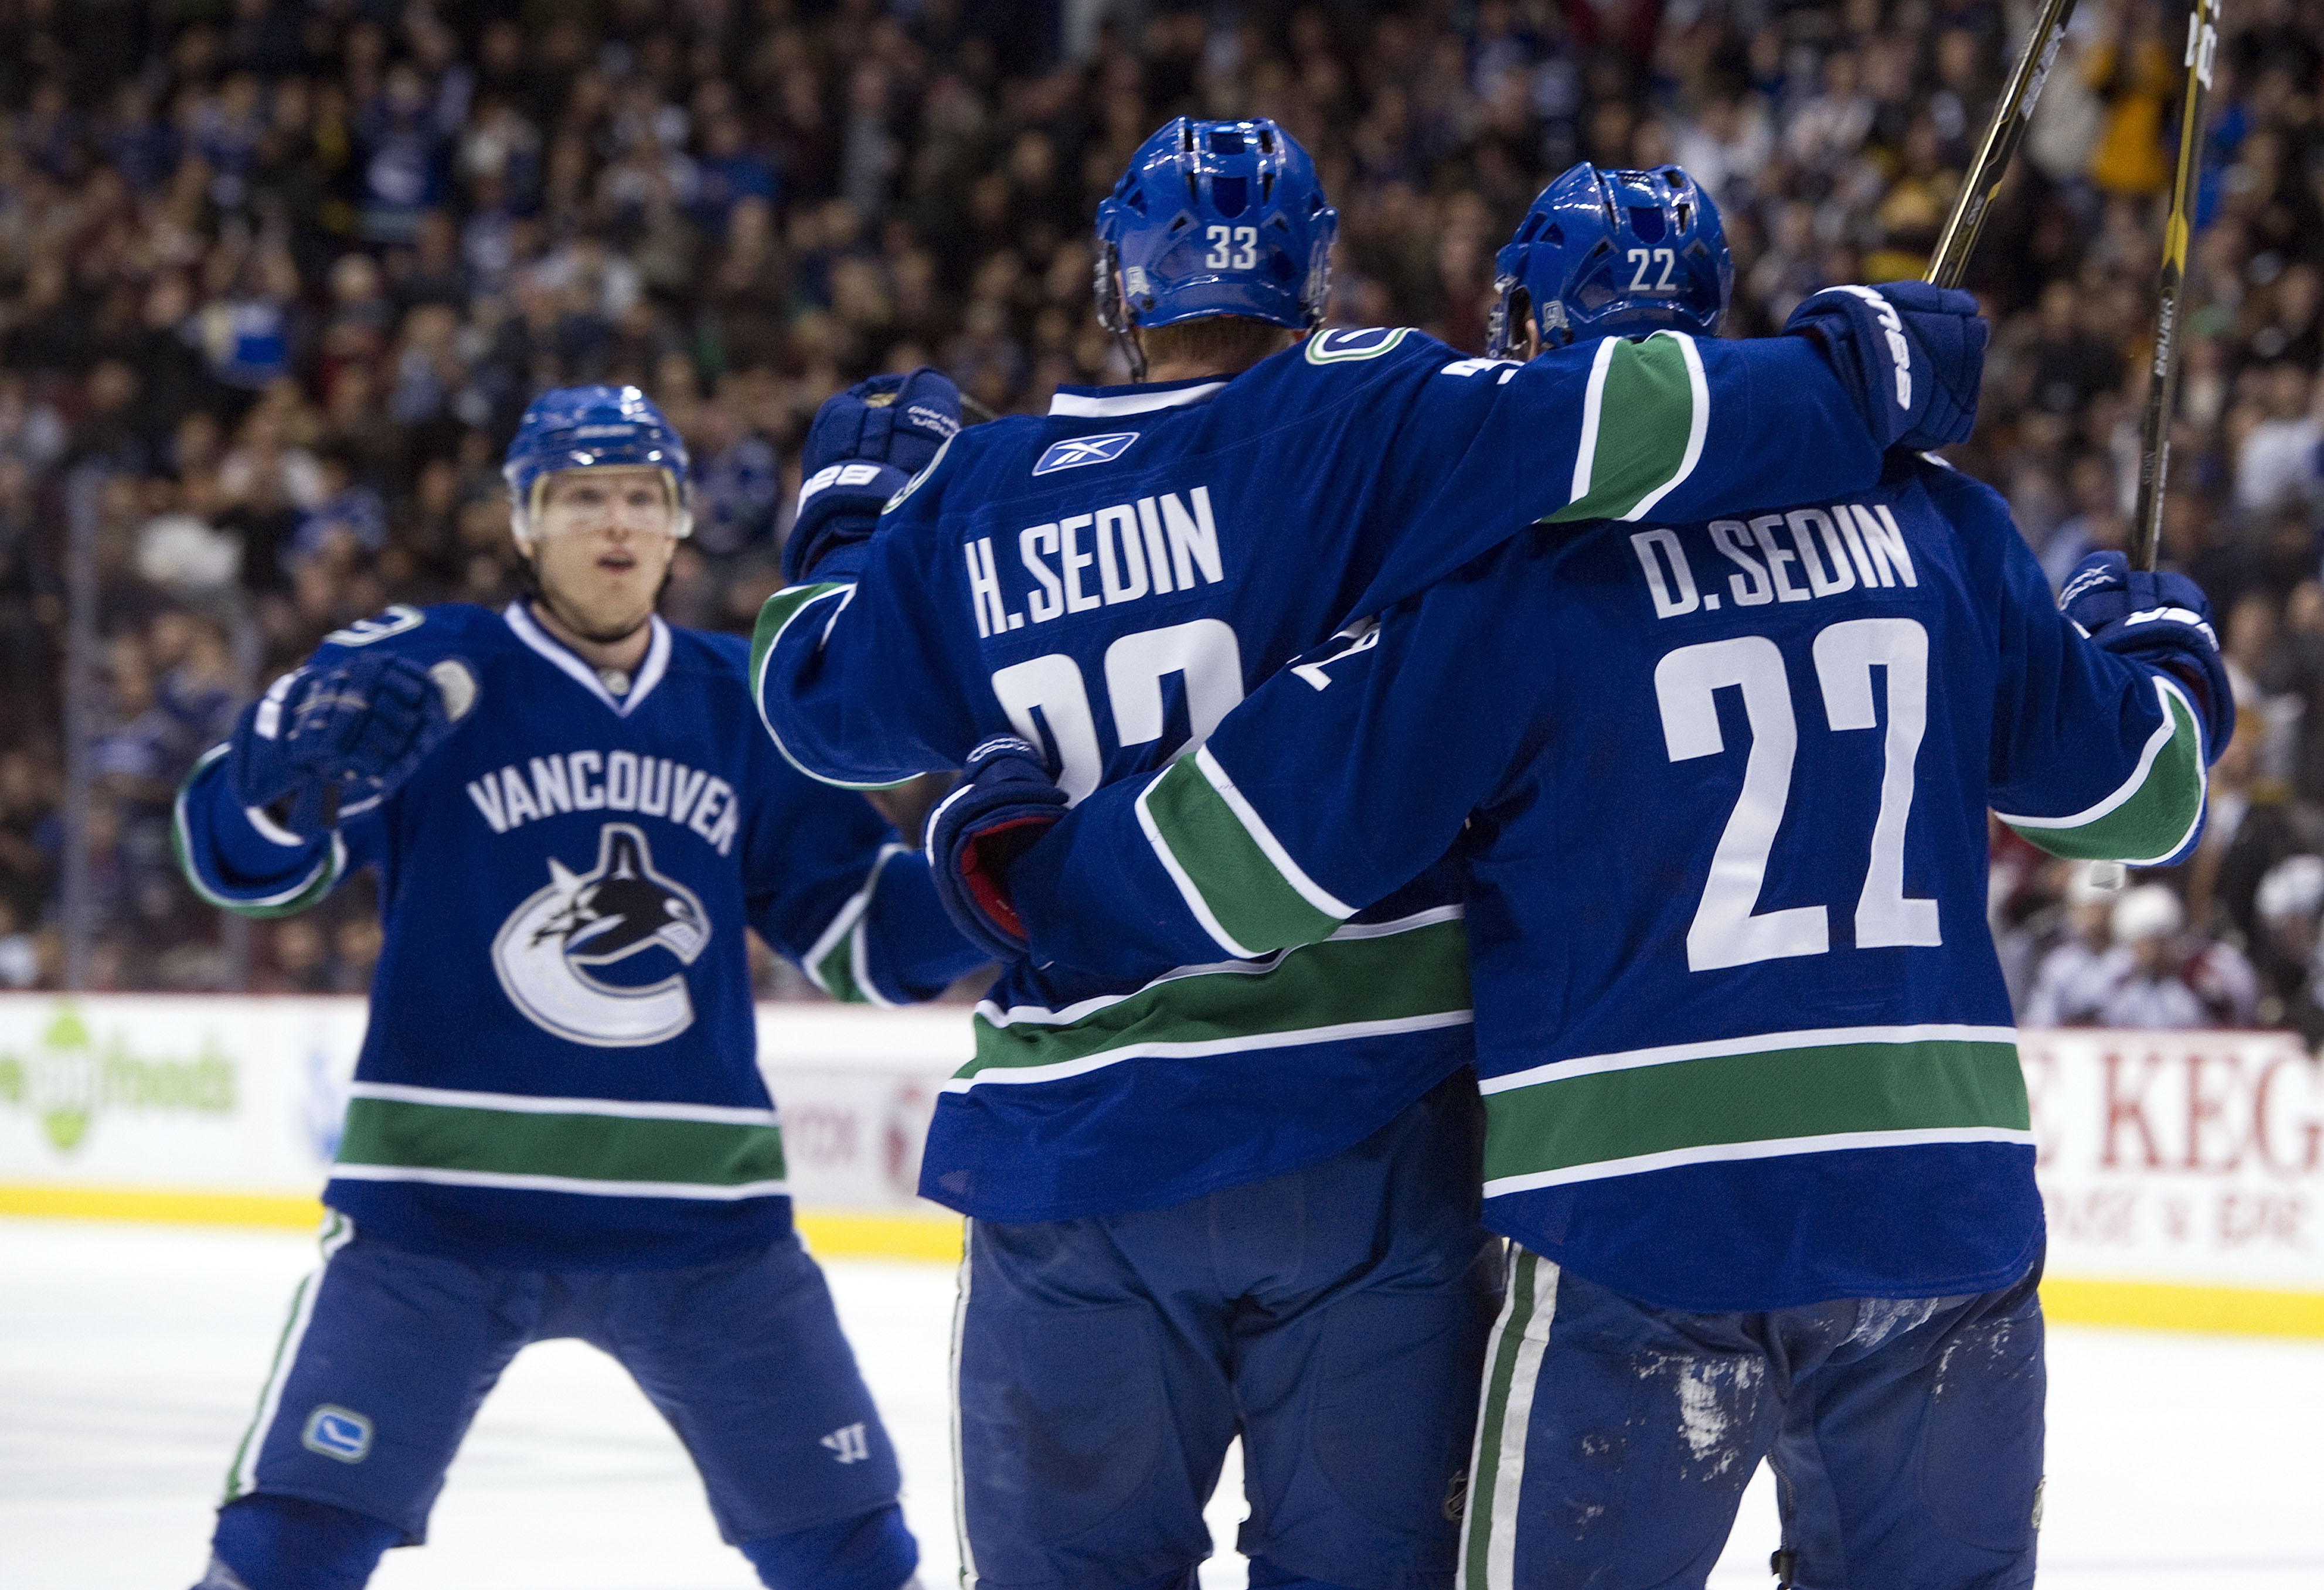 VANCOUVER, CANADA - NOVEMBER 24: Daniel Sedin #22 celebrates with brother Henrik Sedin #33 and Christian Ehrhoff #5 of the Vancouver Canucks after scoring against the Colorado Avalanche during the second period in NHL action on November 24, 2010 at Rogers